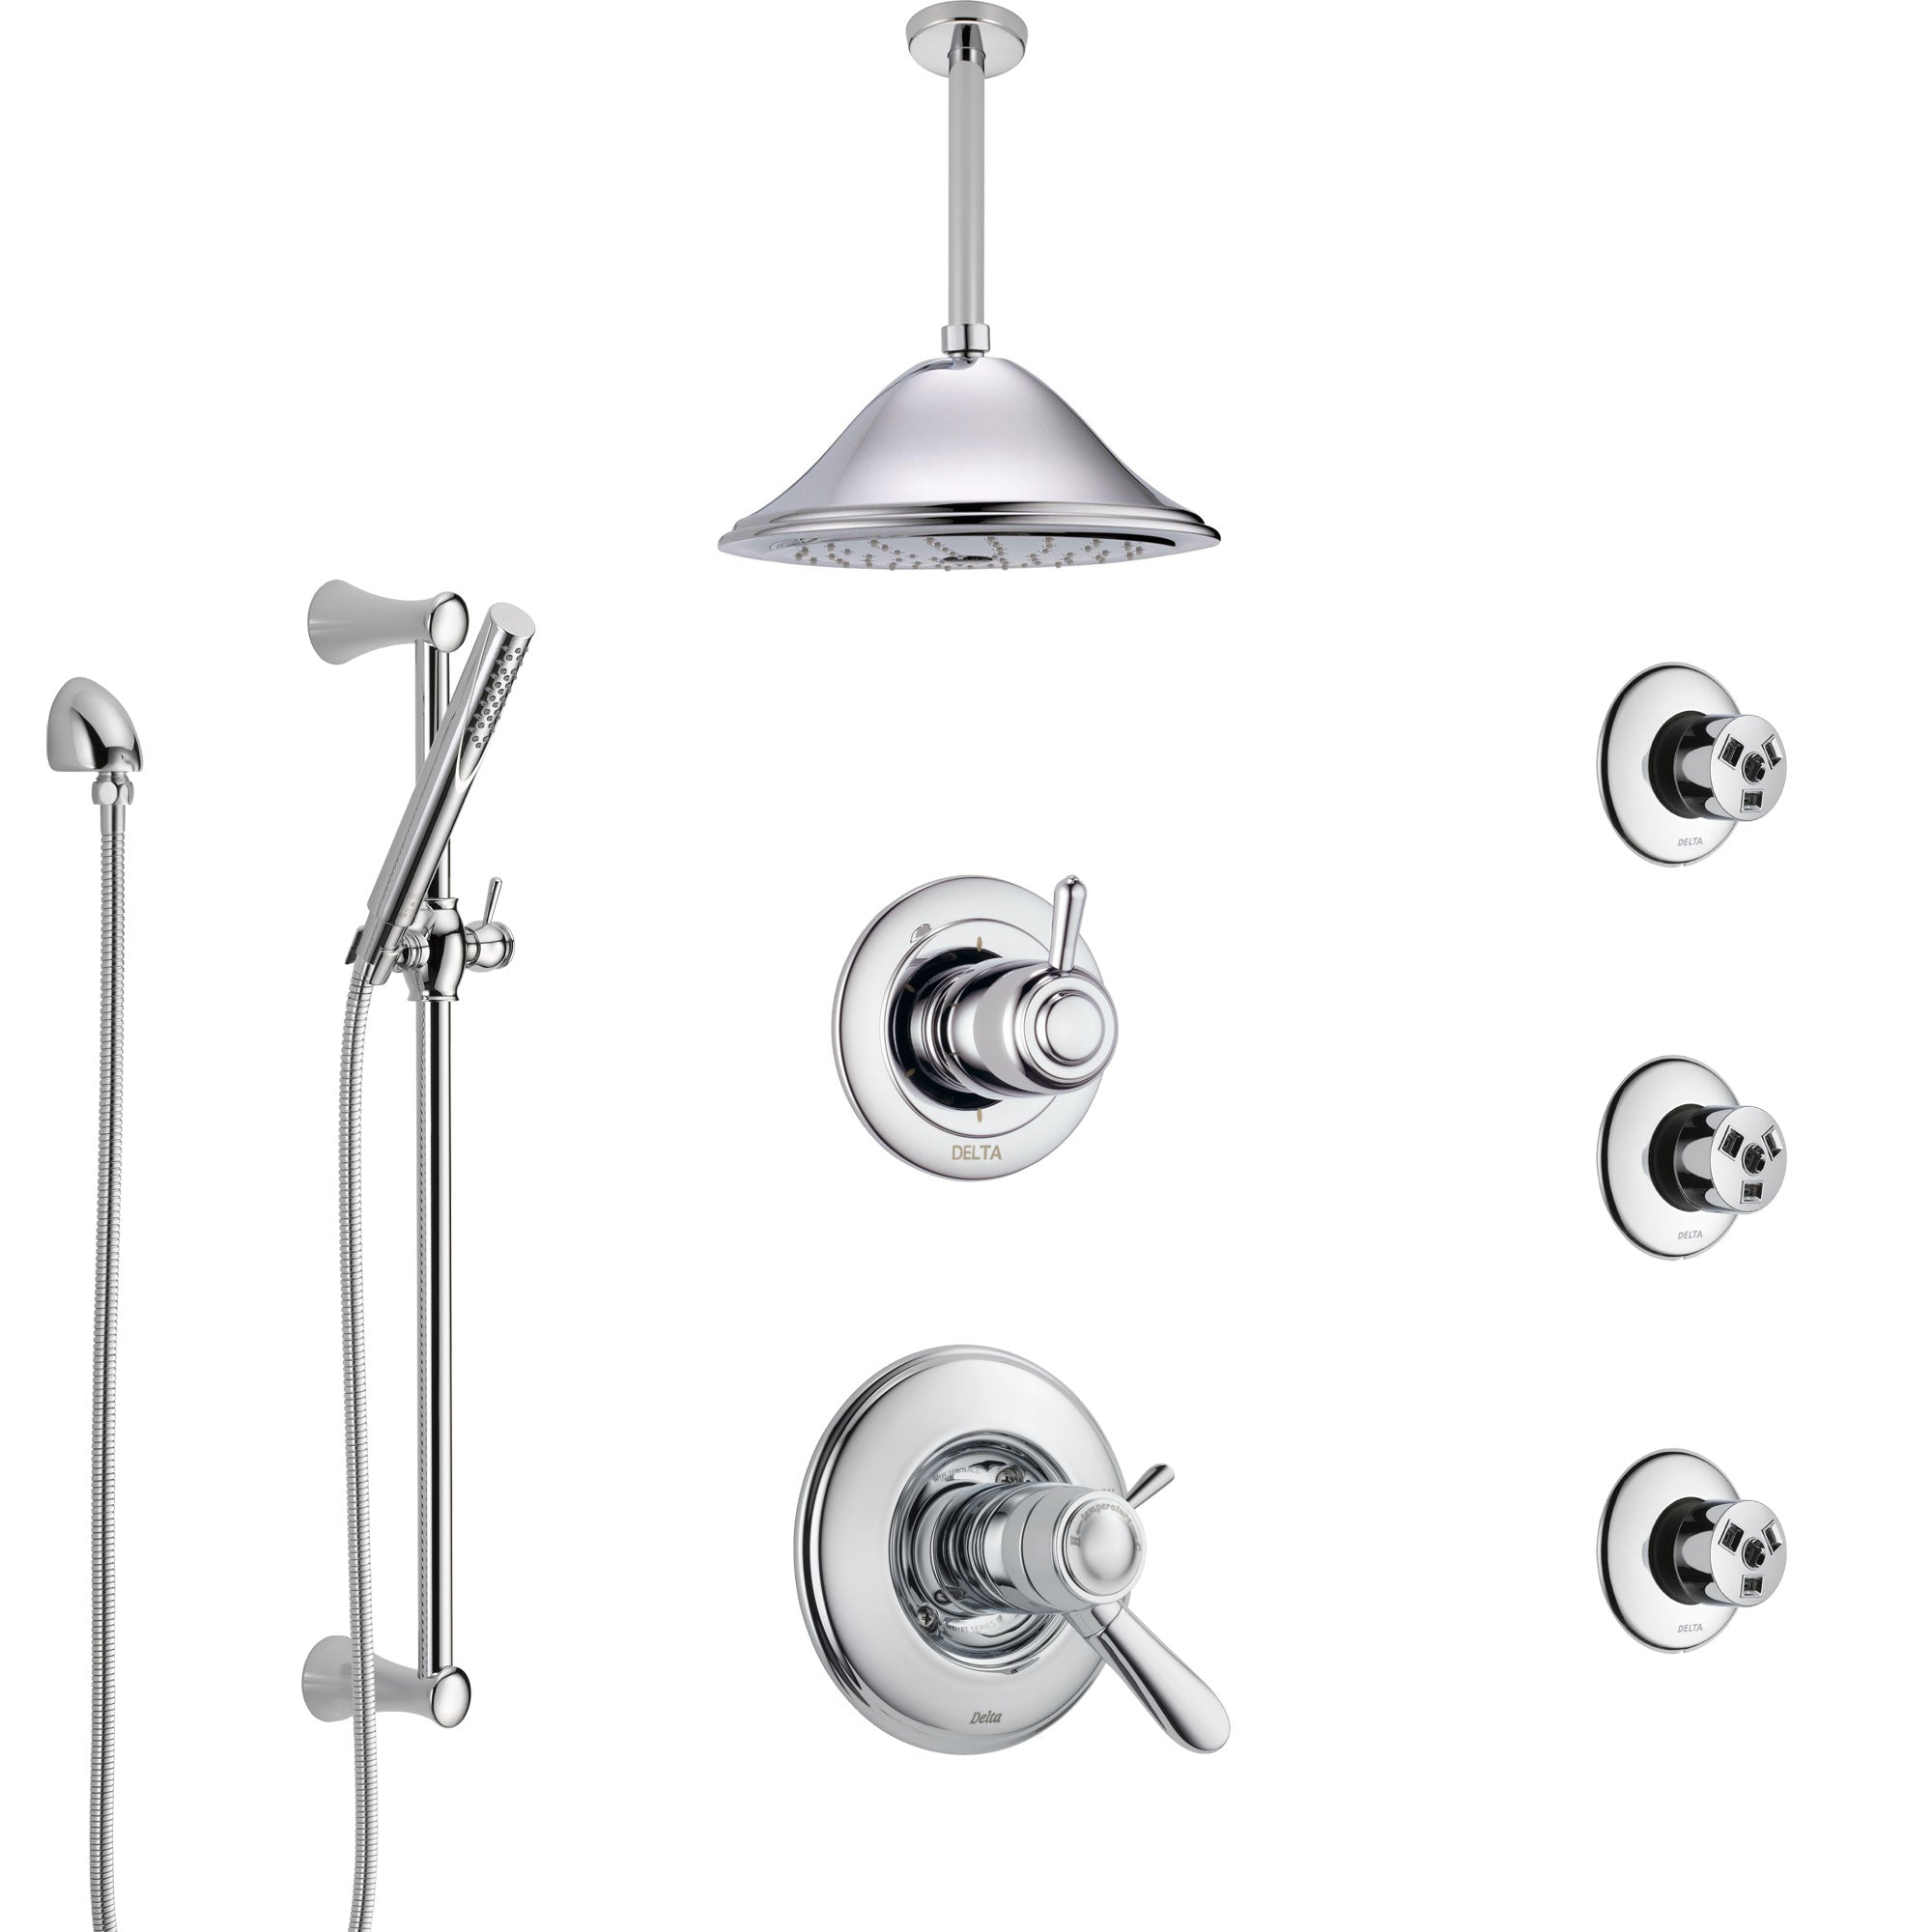 Delta Lahara Chrome Shower System with Dual Thermostatic Control, Diverter, Ceiling Mount Showerhead, 3 Body Sprays, and Hand Shower SS17T3824